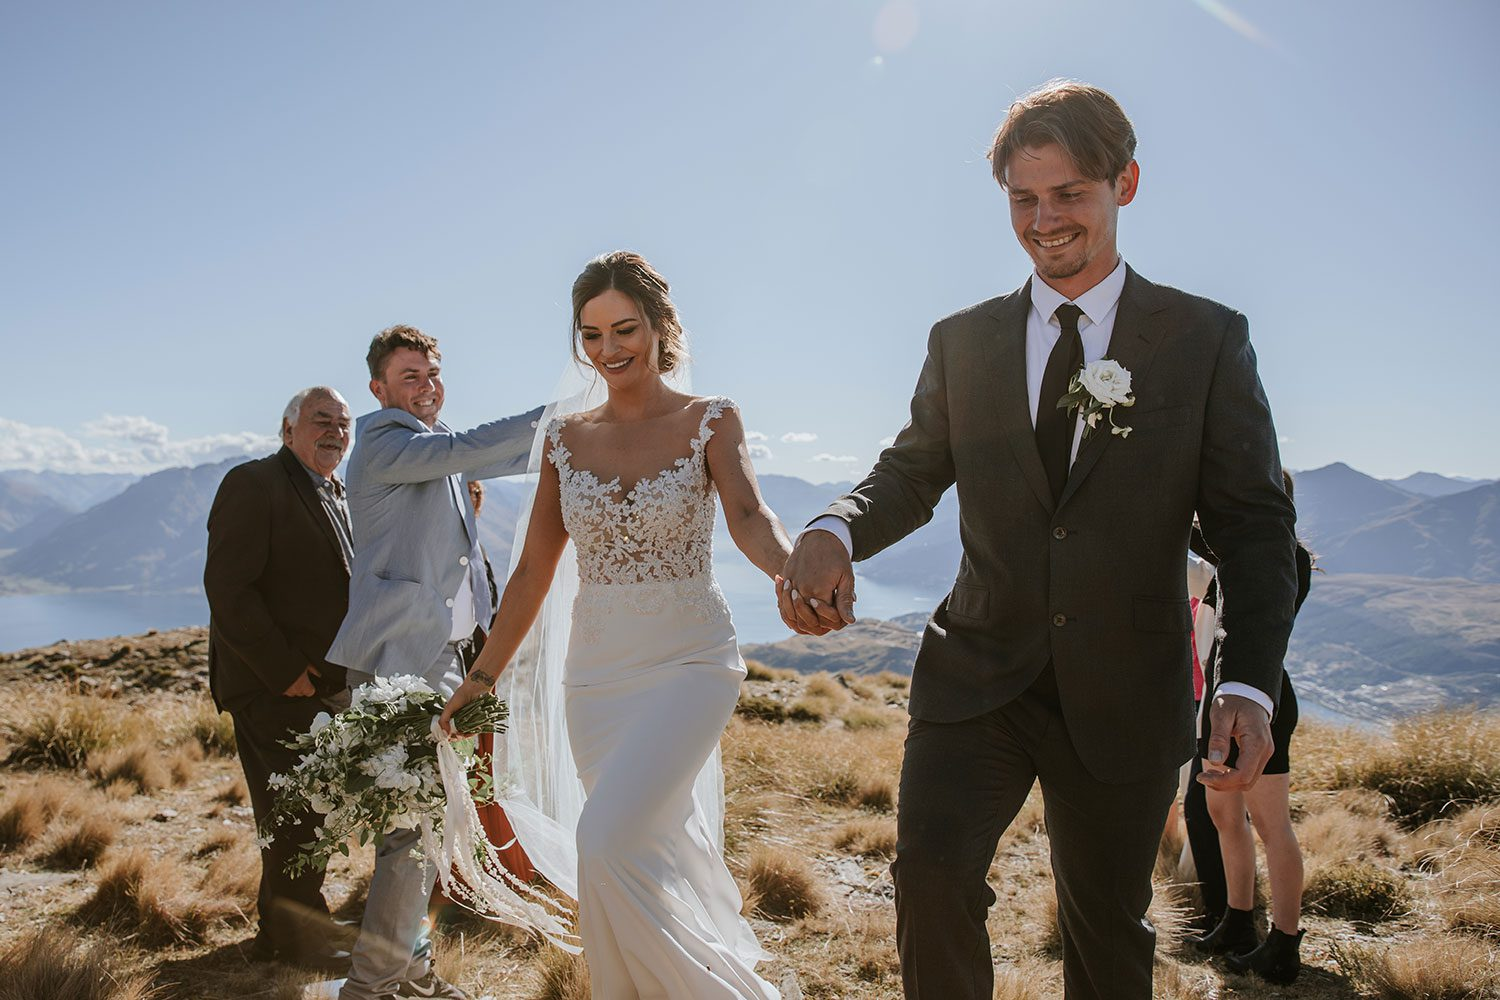 Bride wearing bespoke bridal gown with richly beaded lace over sheer tulle bodice and low back from Auckland wedding dress designer Vinka designs - just married walking out